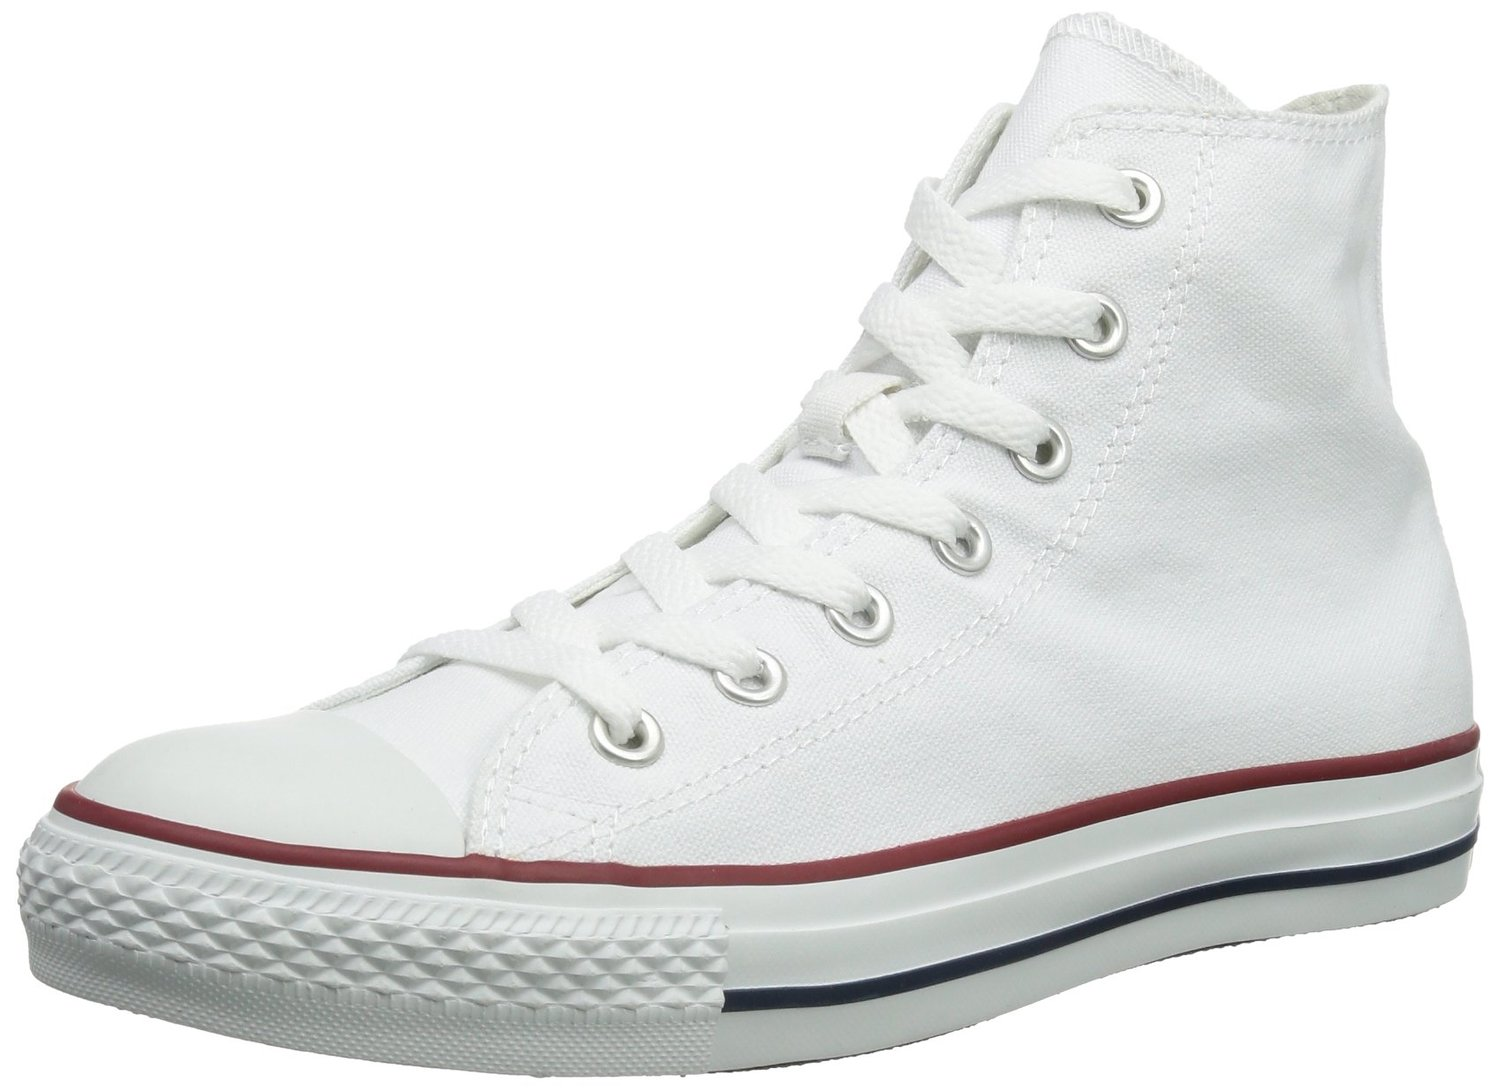 Converse Chuck Taylor All Star Hi Sneakers by Converse Footwear